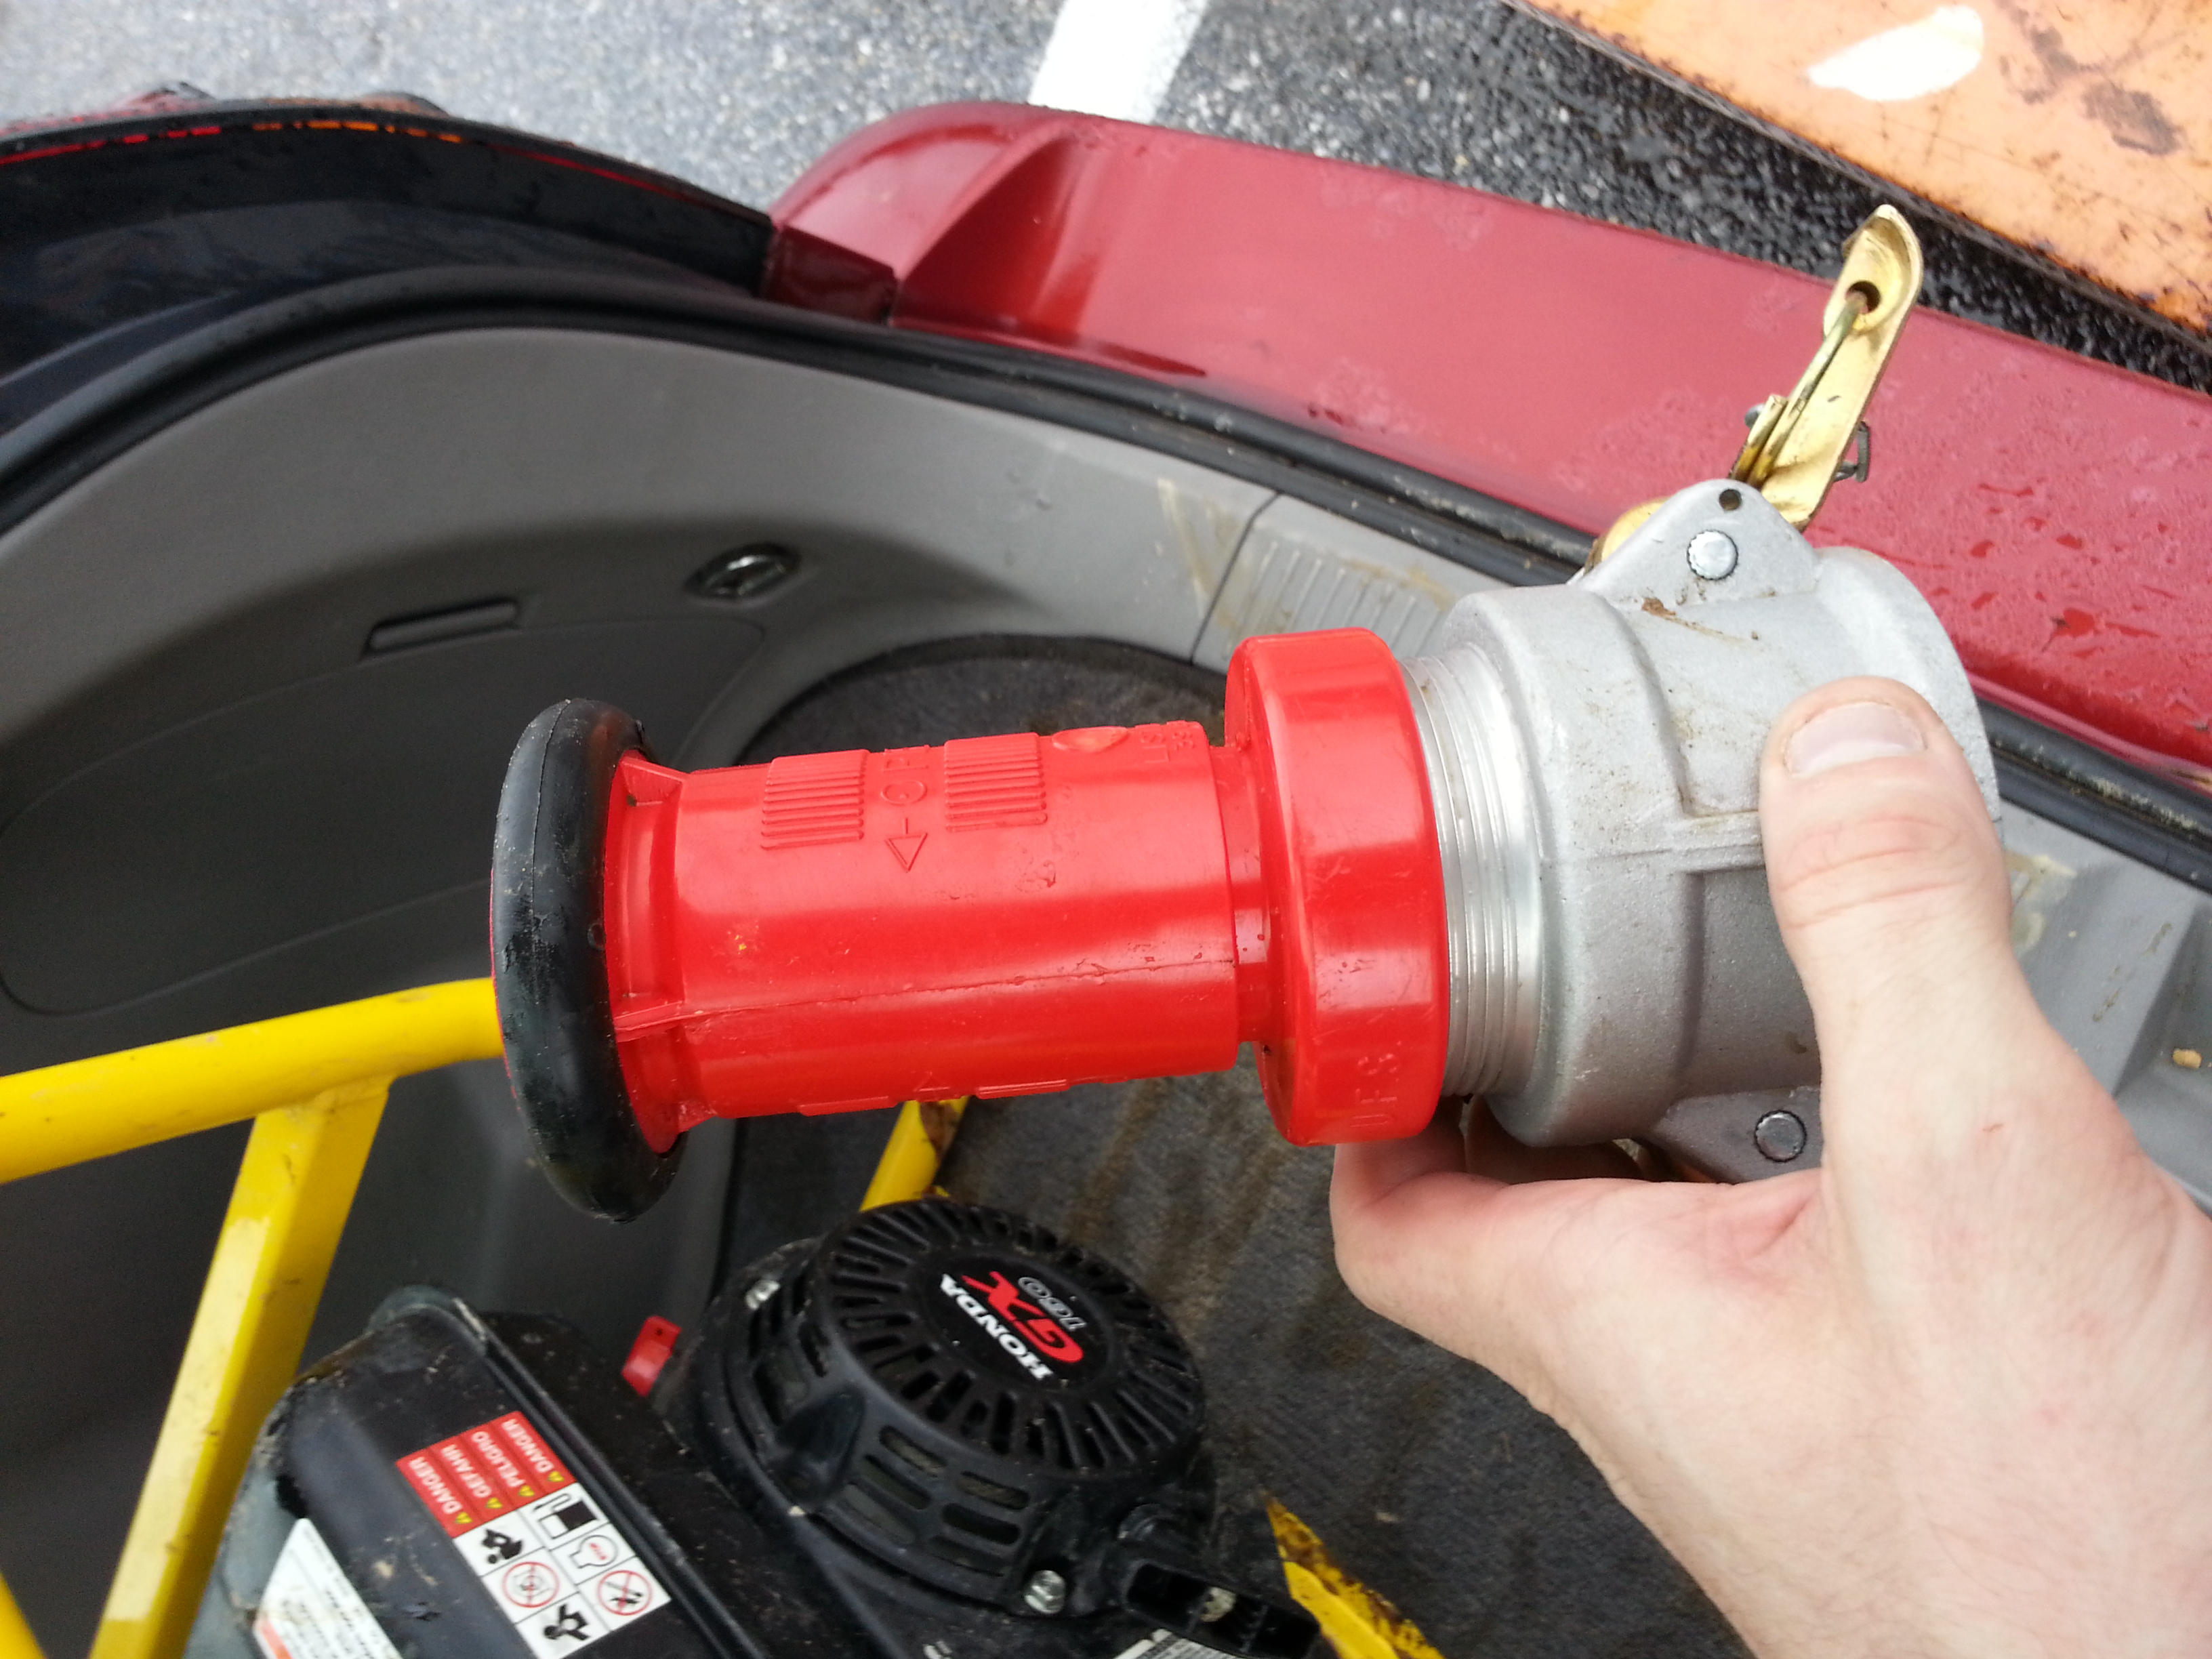 Fire hose nozzle with cam lock adapter attached